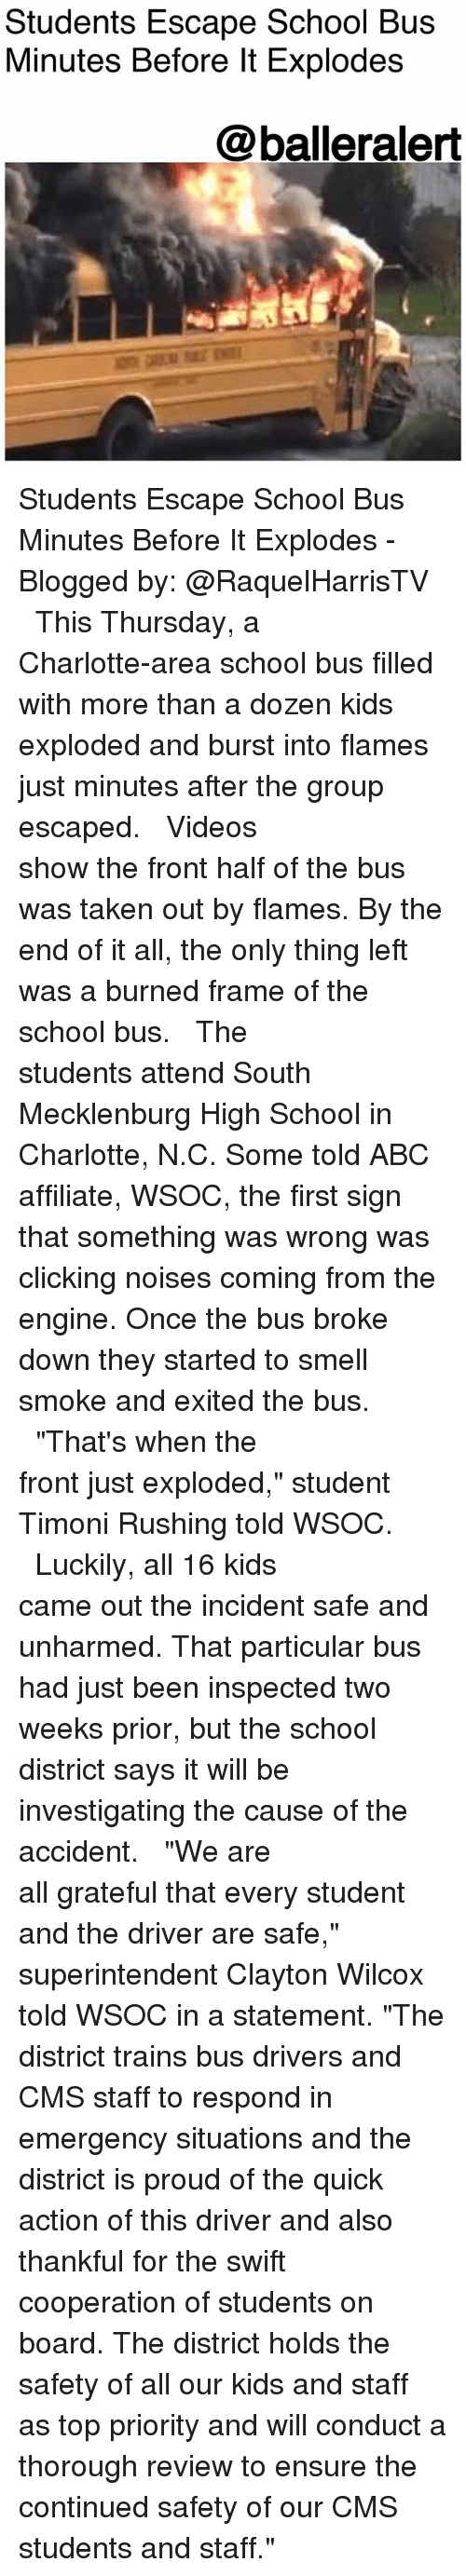 "Abc, Memes, and School: Students Escape School Bus  Minutes Before lt Explodes  @balleralert Students Escape School Bus Minutes Before It Explodes -Blogged by: @RaquelHarrisTV ⠀⠀⠀⠀⠀⠀⠀⠀⠀ ⠀⠀⠀⠀⠀⠀⠀⠀⠀ This Thursday, a Charlotte-area school bus filled with more than a dozen kids exploded and burst into flames just minutes after the group escaped. ⠀⠀⠀⠀⠀⠀⠀⠀⠀ ⠀⠀⠀⠀⠀⠀⠀⠀⠀ Videos show the front half of the bus was taken out by flames. By the end of it all, the only thing left was a burned frame of the school bus. ⠀⠀⠀⠀⠀⠀⠀⠀⠀ ⠀⠀⠀⠀⠀⠀⠀⠀⠀ The students attend South Mecklenburg High School in Charlotte, N.C. Some told ABC affiliate, WSOC, the first sign that something was wrong was clicking noises coming from the engine. Once the bus broke down they started to smell smoke and exited the bus. ⠀⠀⠀⠀⠀⠀⠀⠀⠀ ⠀⠀⠀⠀⠀⠀⠀⠀⠀ ""That's when the front just exploded,"" student Timoni Rushing told WSOC. ⠀⠀⠀⠀⠀⠀⠀⠀⠀ ⠀⠀⠀⠀⠀⠀⠀⠀⠀ Luckily, all 16 kids came out the incident safe and unharmed. That particular bus had just been inspected two weeks prior, but the school district says it will be investigating the cause of the accident. ⠀⠀⠀⠀⠀⠀⠀⠀⠀ ⠀⠀⠀⠀⠀⠀⠀⠀⠀ ""We are all grateful that every student and the driver are safe,"" superintendent Clayton Wilcox told WSOC in a statement. ""The district trains bus drivers and CMS staff to respond in emergency situations and the district is proud of the quick action of this driver and also thankful for the swift cooperation of students on board. The district holds the safety of all our kids and staff as top priority and will conduct a thorough review to ensure the continued safety of our CMS students and staff."""